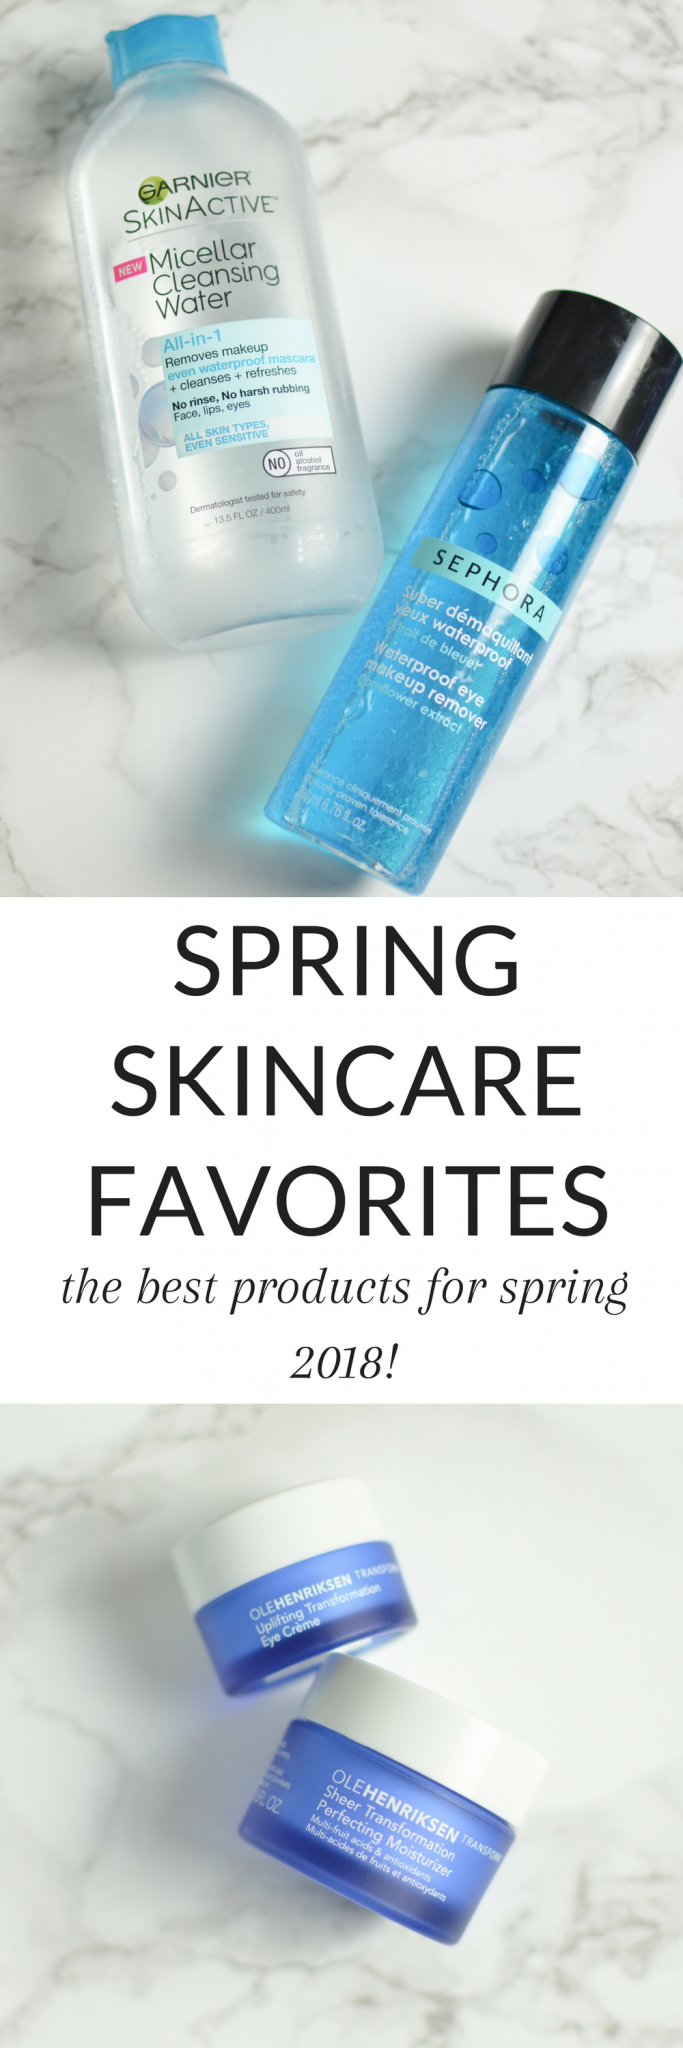 Some recent skincare favorites - great ways to keep your skin looking young and bright! #skincare #sephora #antiaging